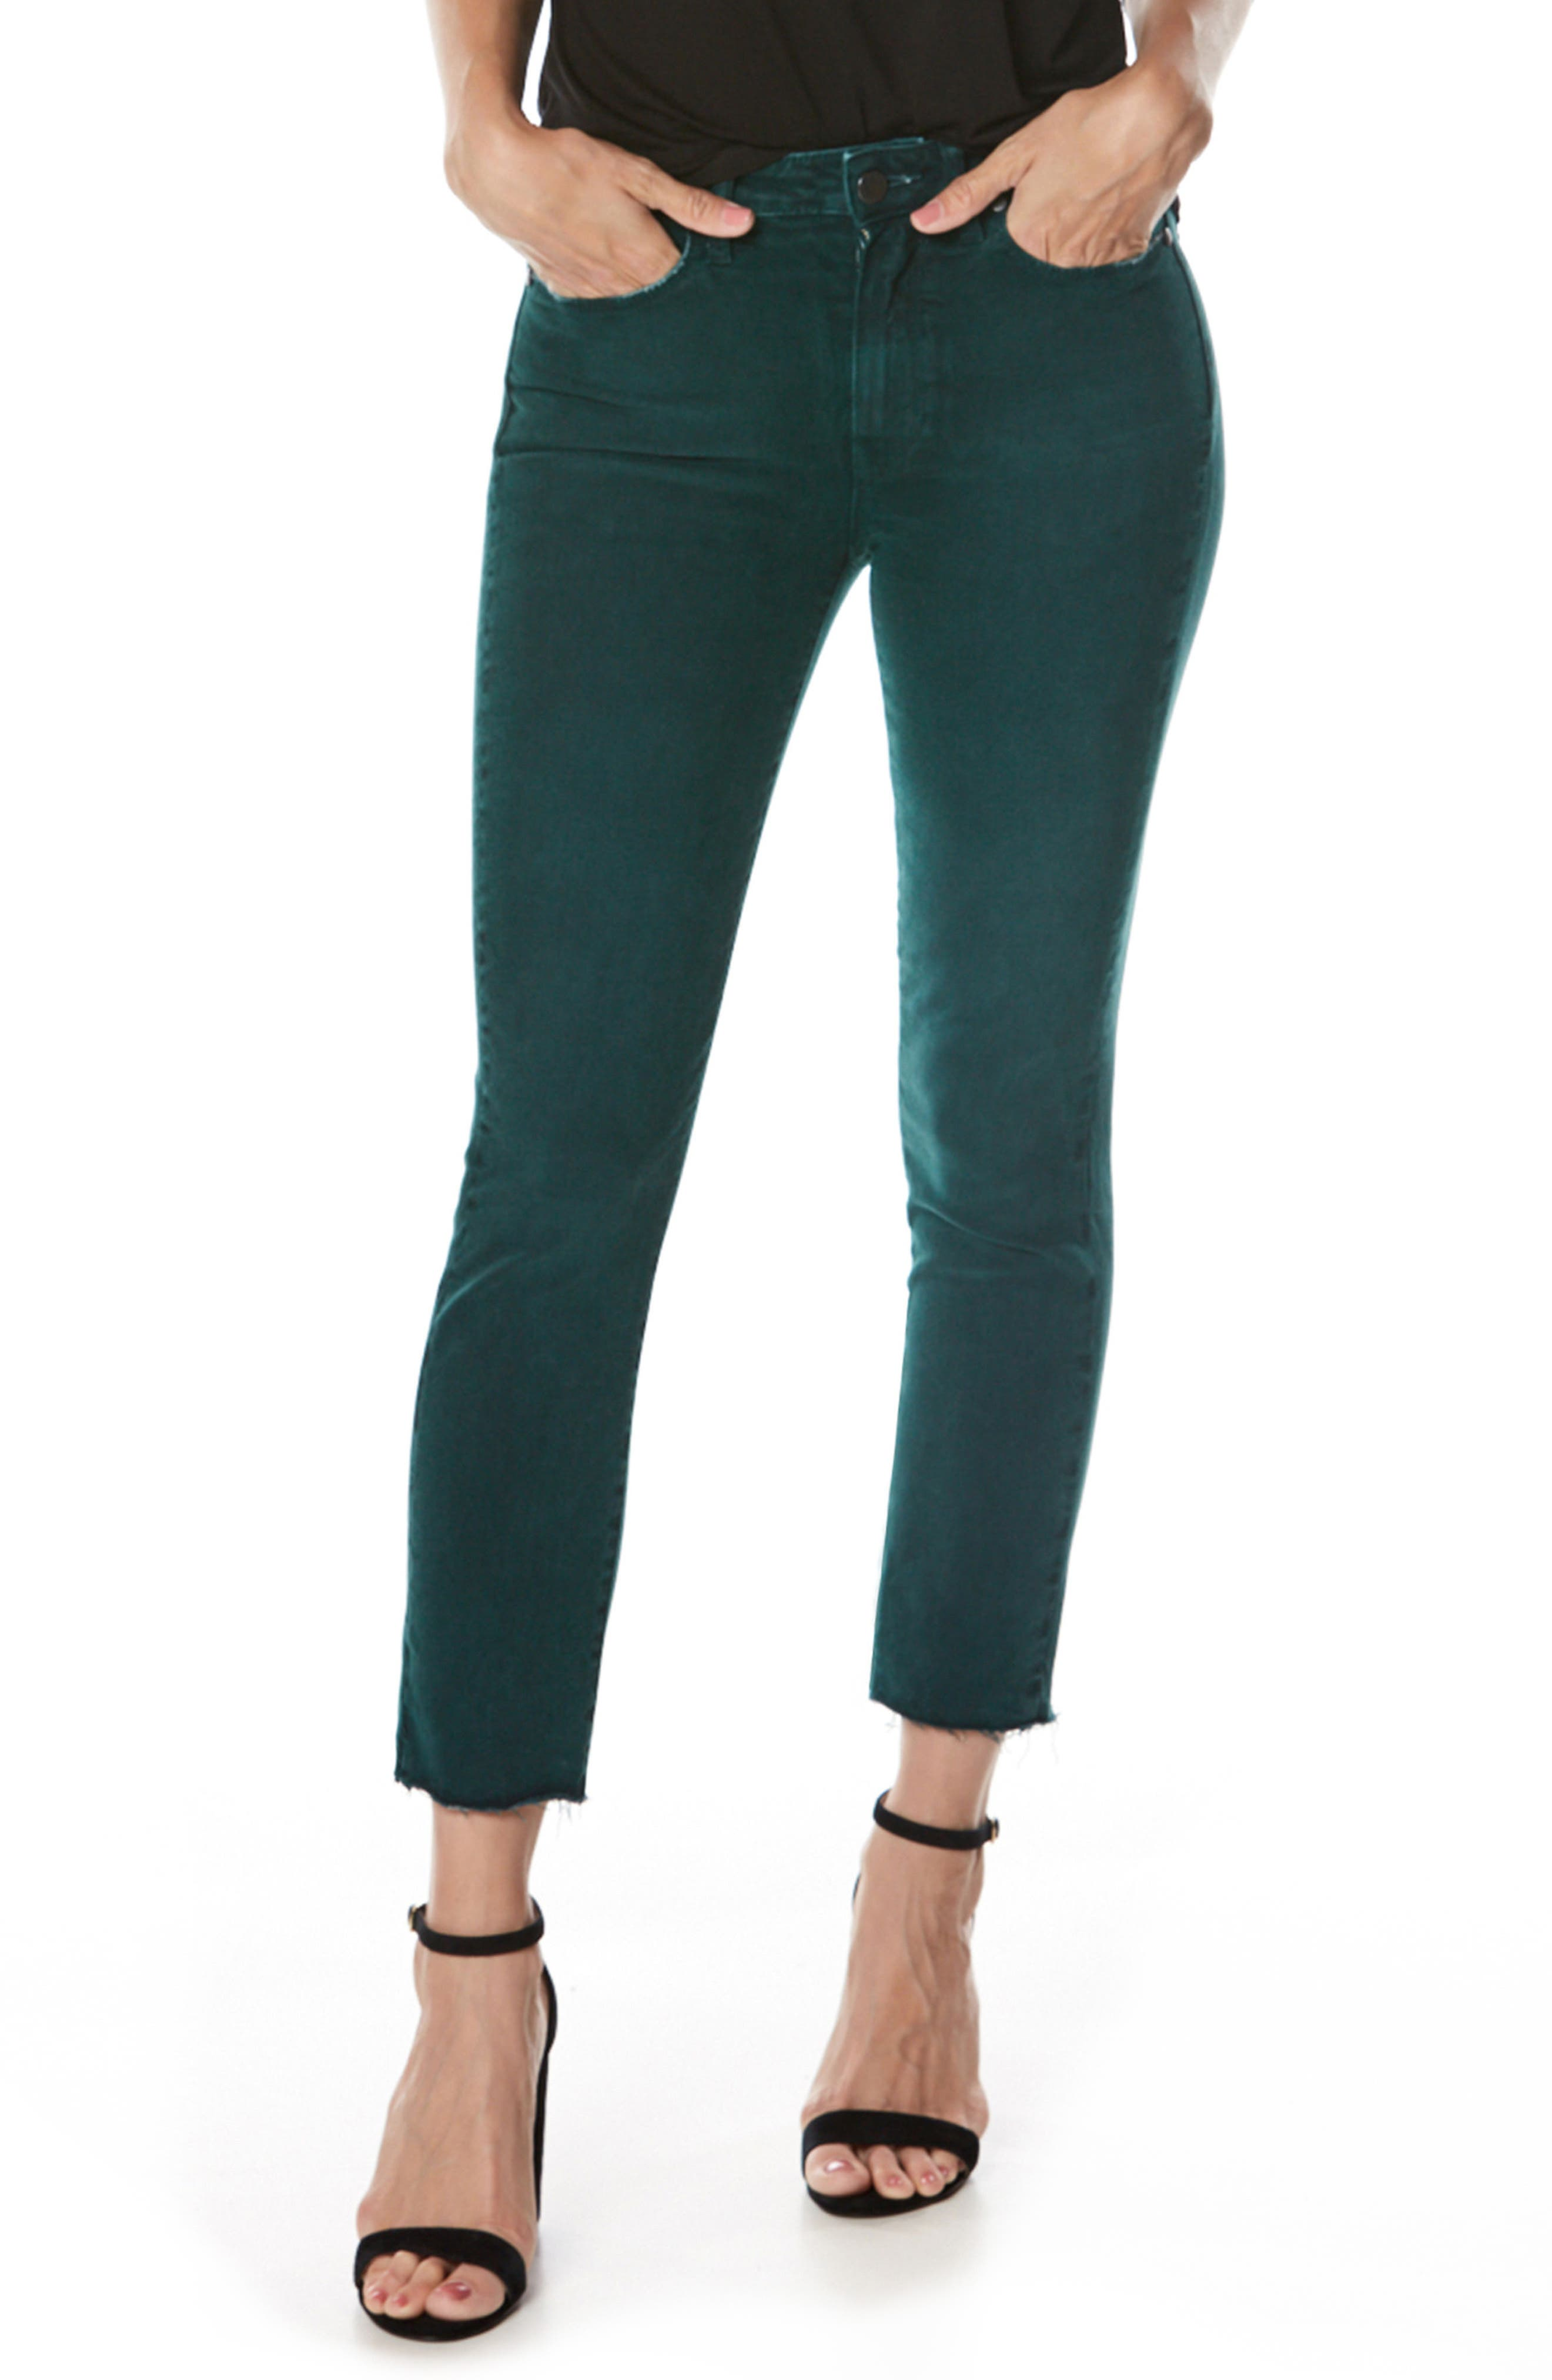 Alternate Image 1 Selected - PAIGE Jacqueline High Waist Crop Straight Leg Jeans